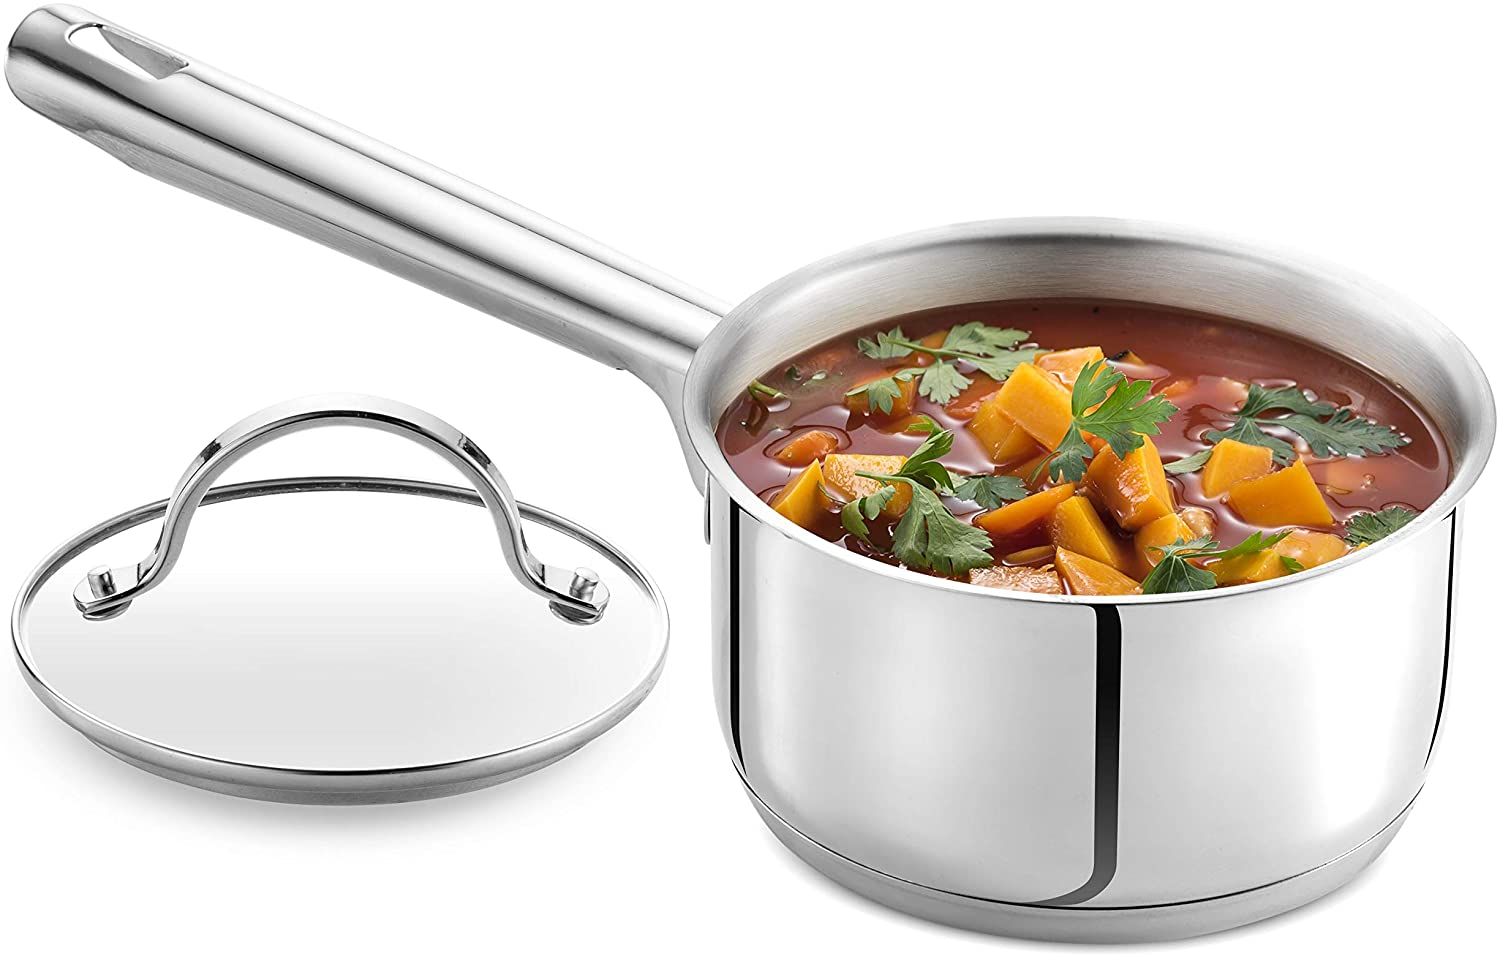 Stainless Steel Pot with Glass Cookware Lid